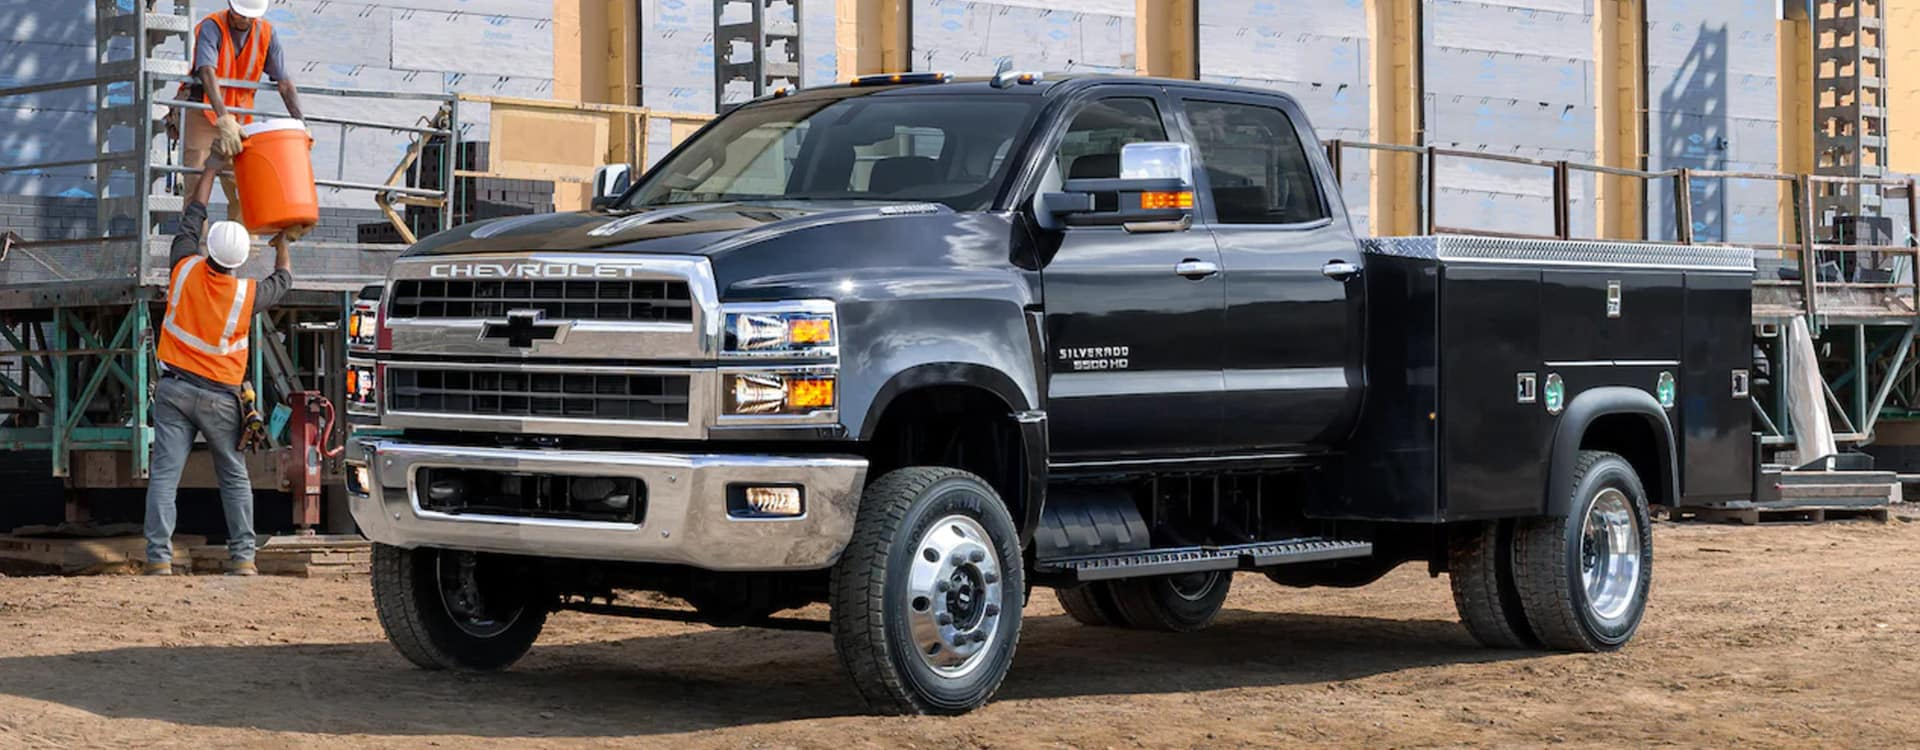 2021 Chevrolet Silverado Chassis Cab in St. Louis